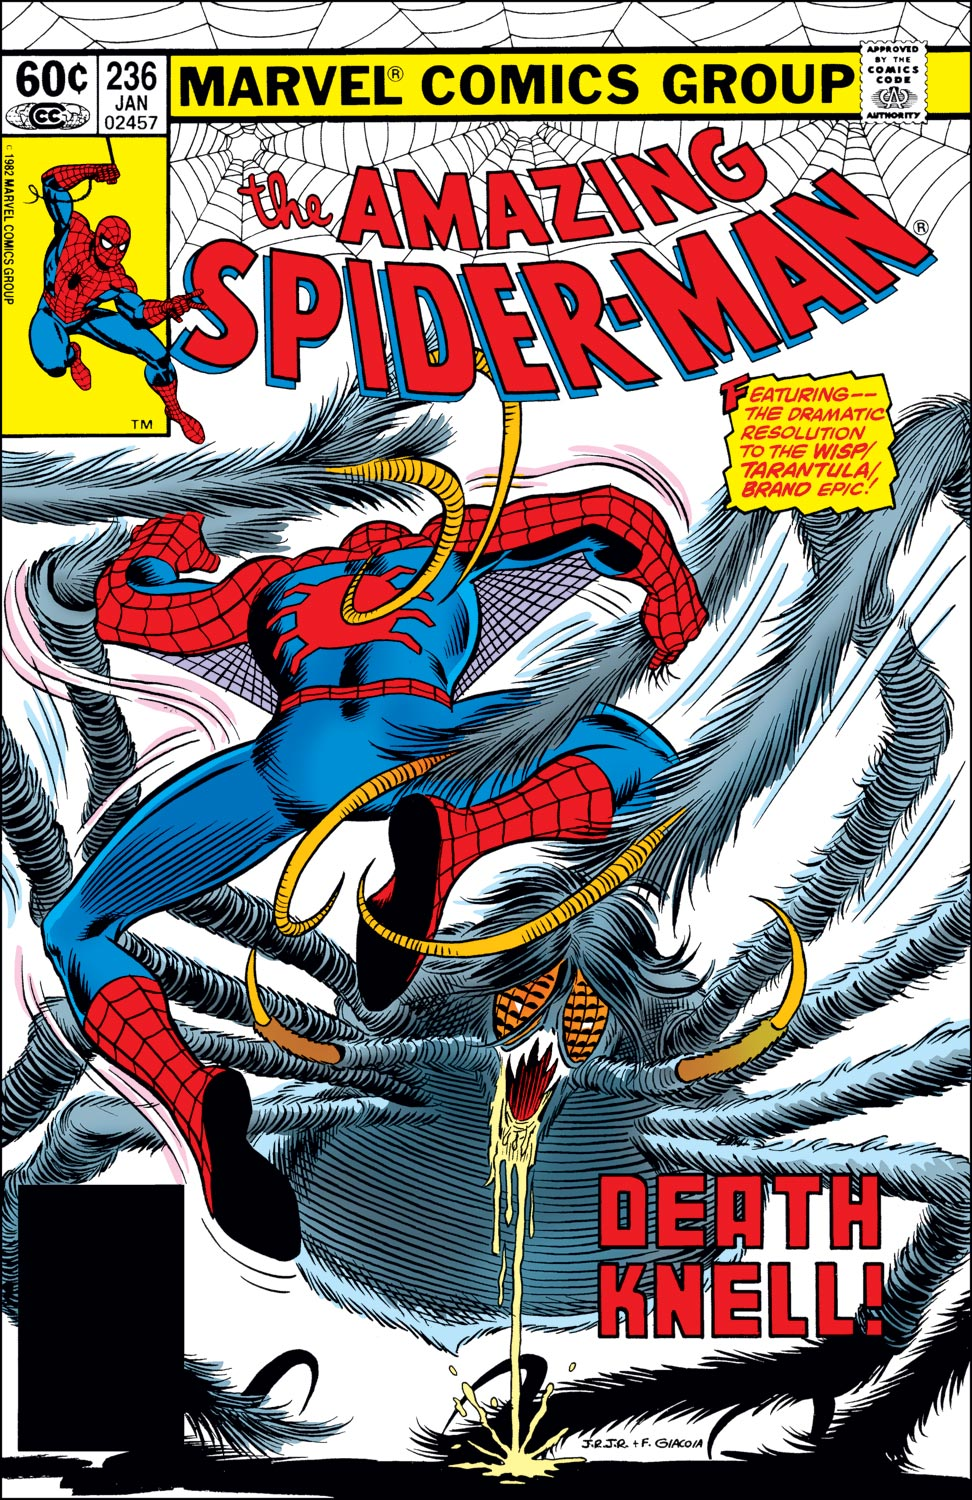 The Amazing Spider-Man (1963) #236